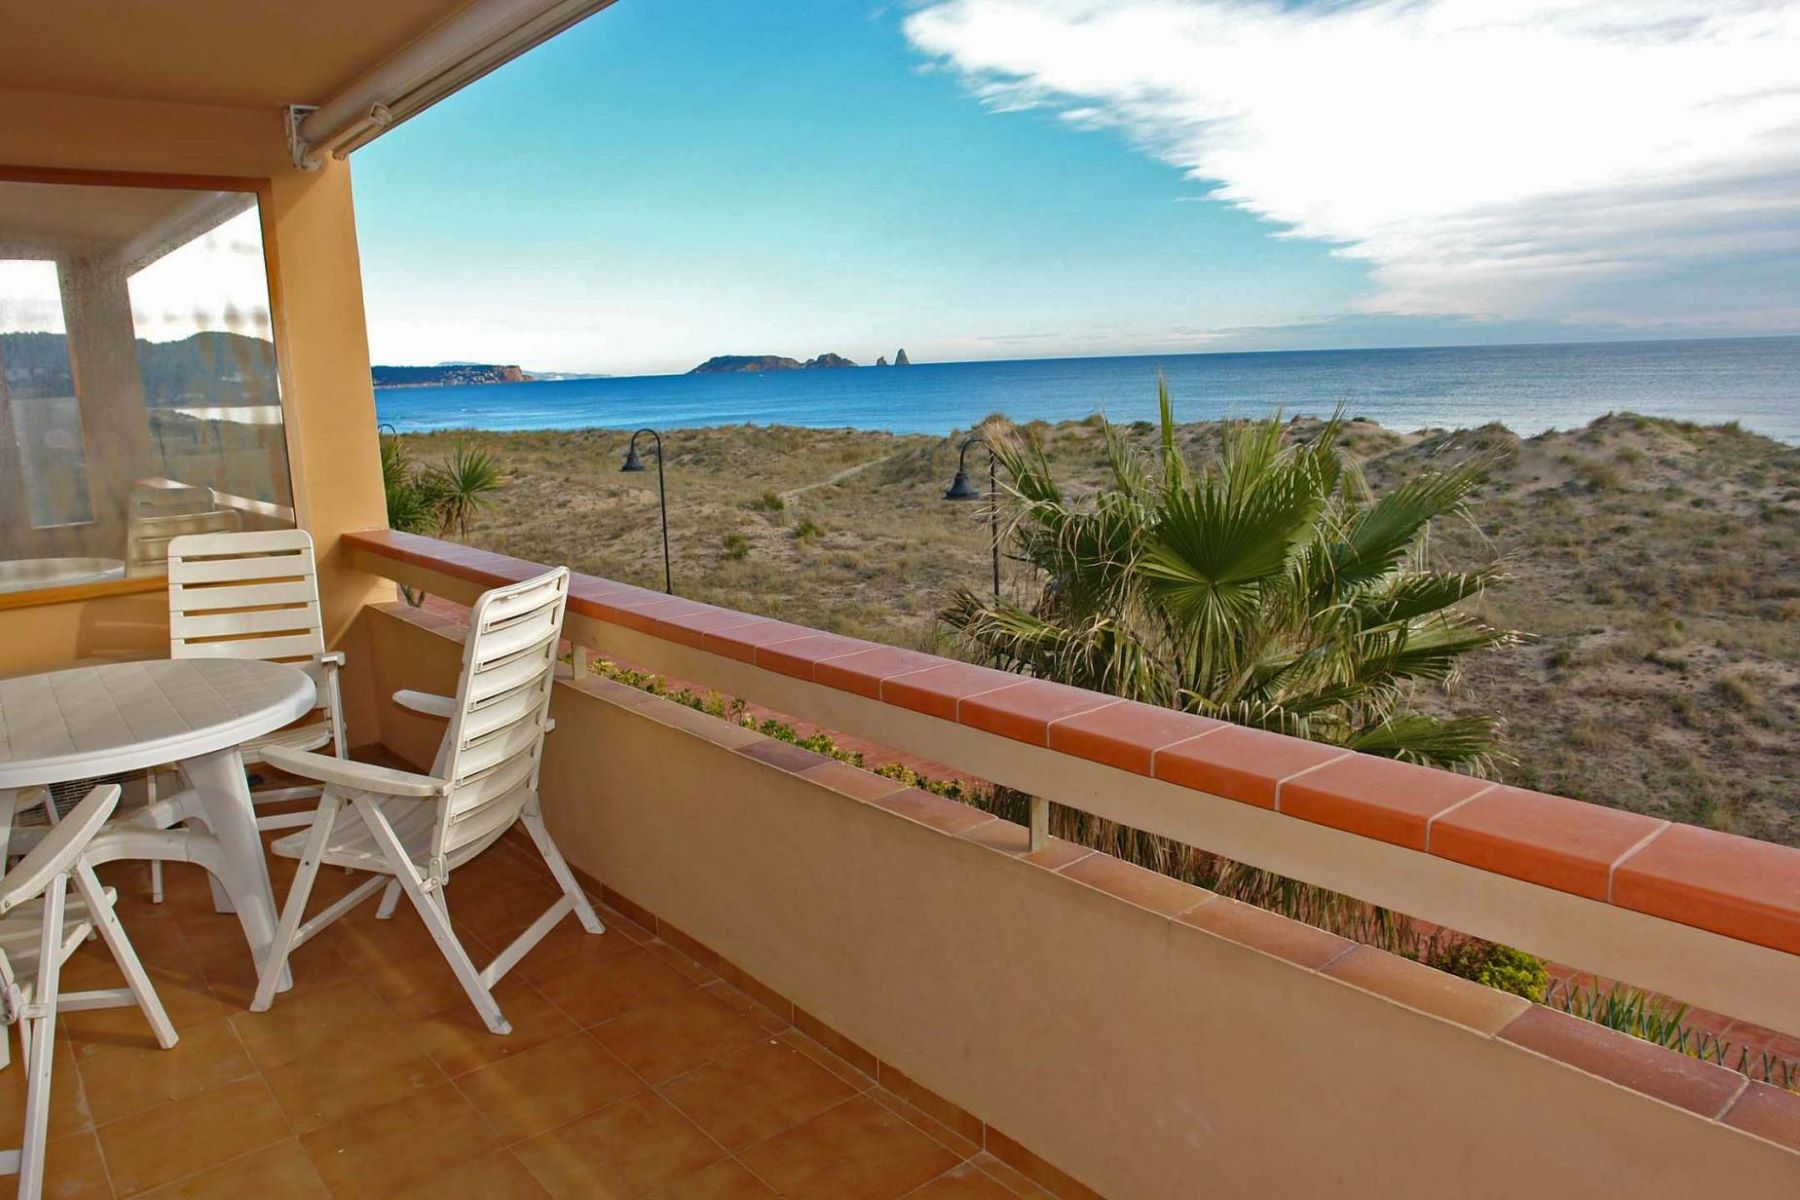 Apartamento por un Venta en Seafront apartment with fantastic views in Playa de Pals Pals, Costa Brava, 17256 España